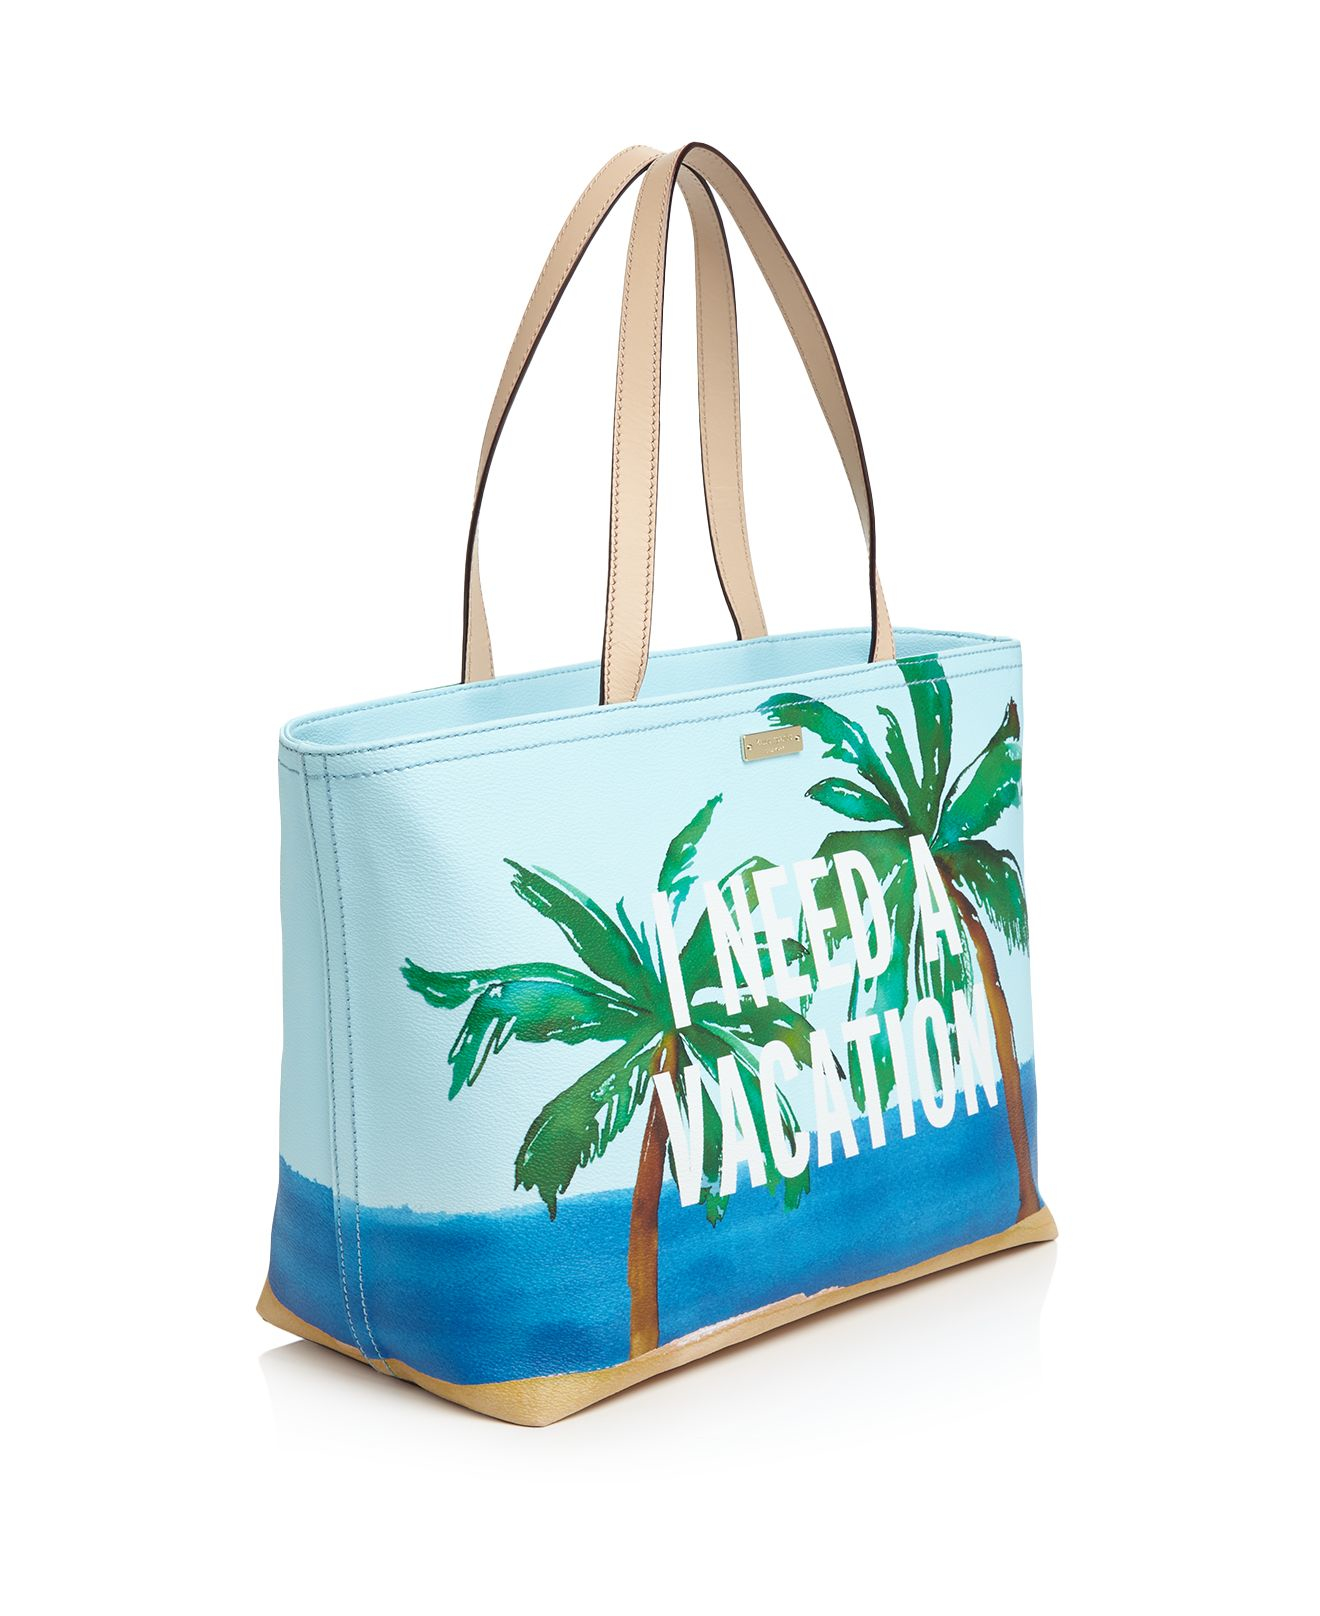 Kate Spade New York I Need A Vacation Francis Tote In